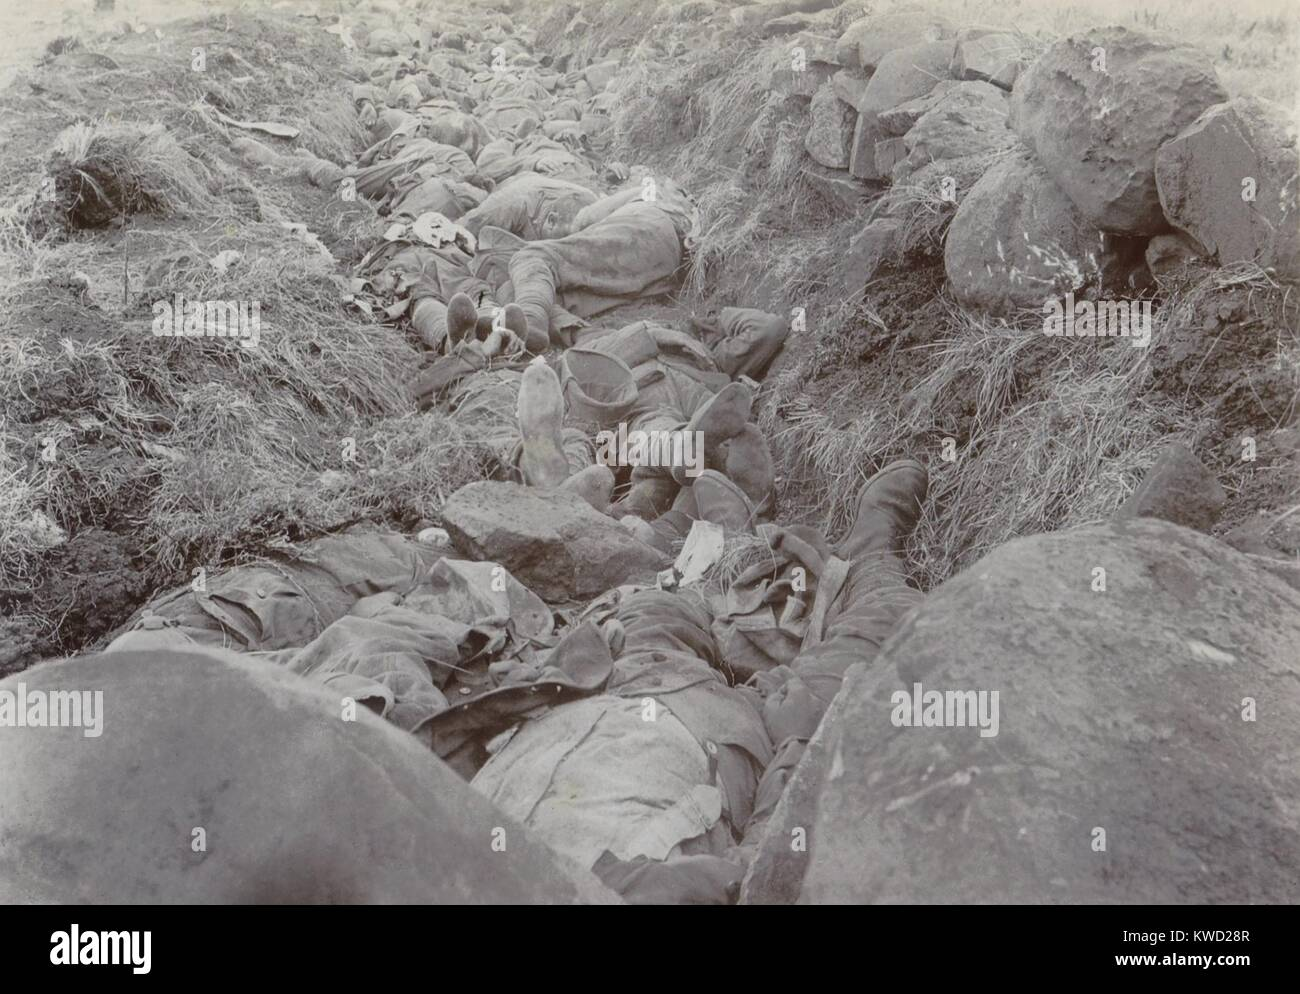 British soldiers lie dead in their shallow trench after the Battle of Spionkop, Jan. 23-24, 1900. They were part - Stock Image